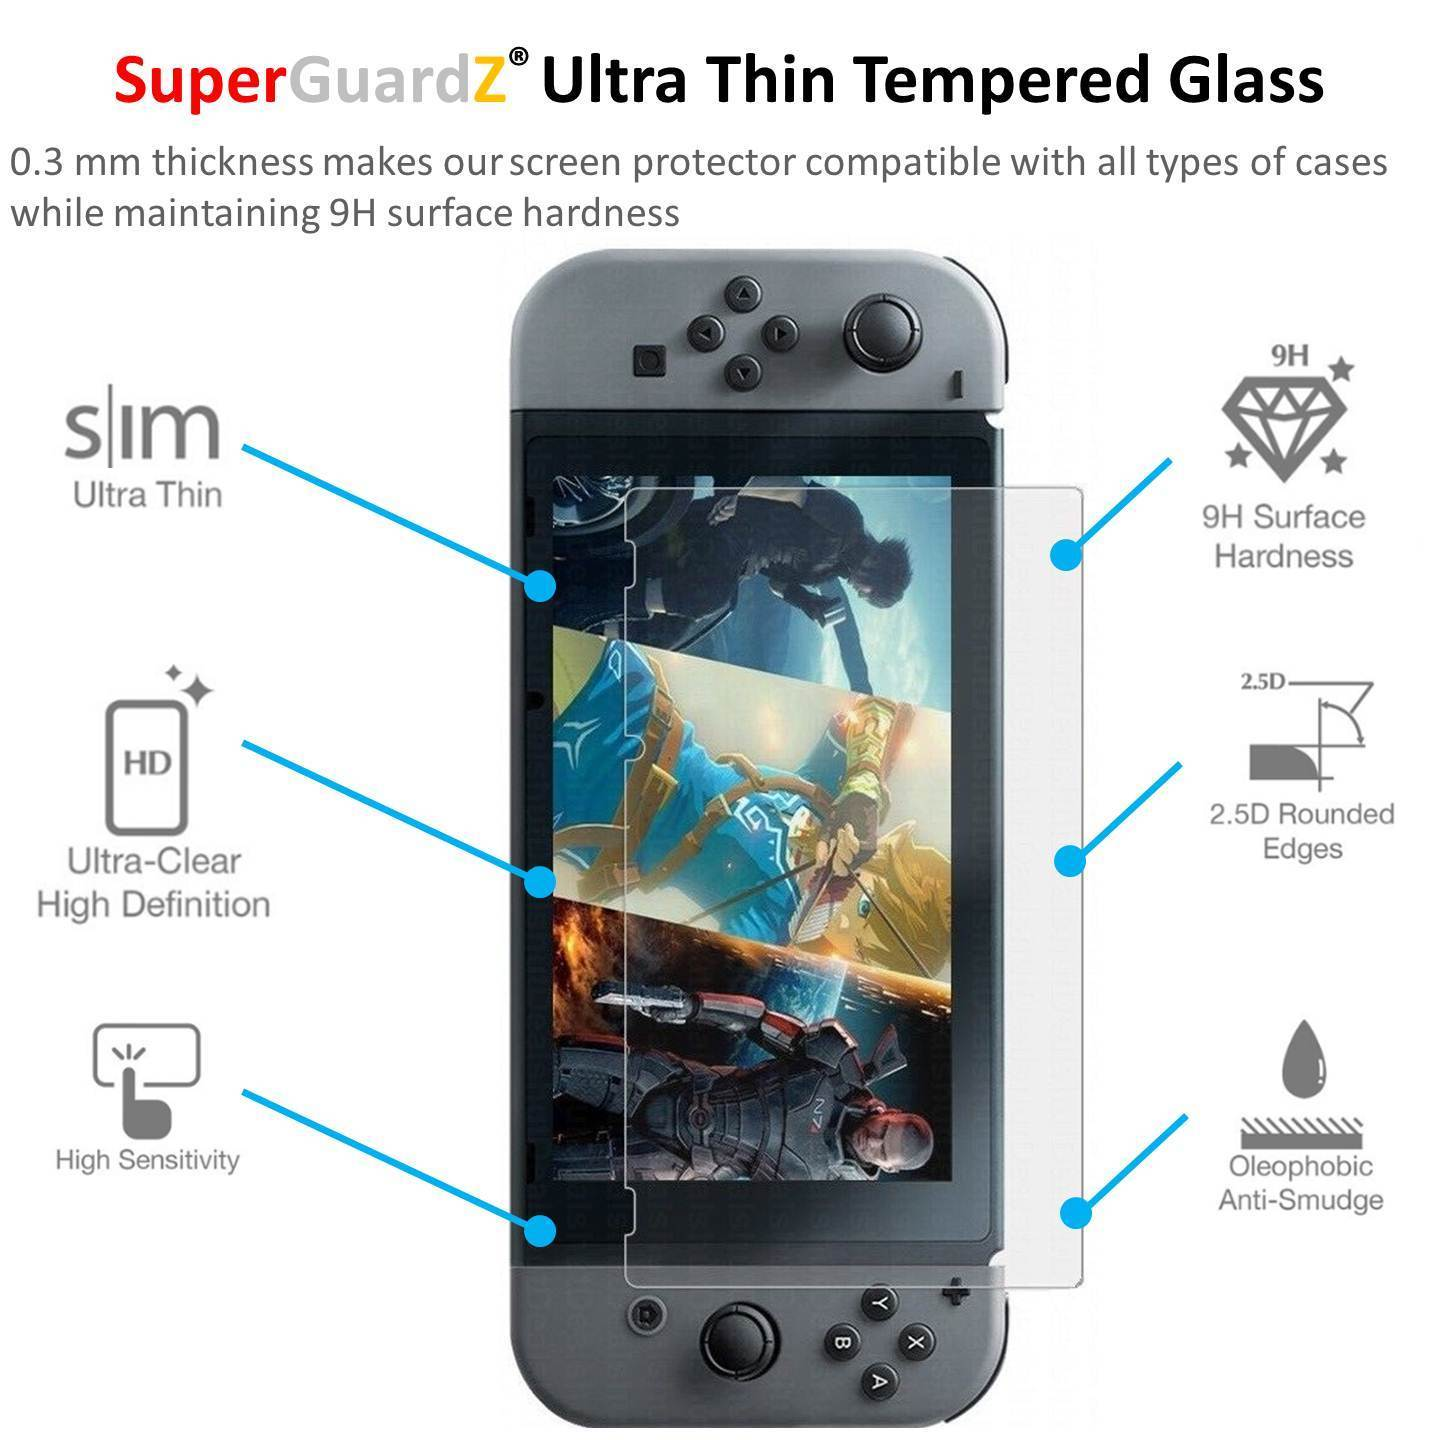 finest selection 0b58c 3742a For Nintendo Switch - SuperGuardZ Tempered Glass Screen Protector, 9H,  Anti-Scratch, Anti-Bubble, Anti-Fingerprint